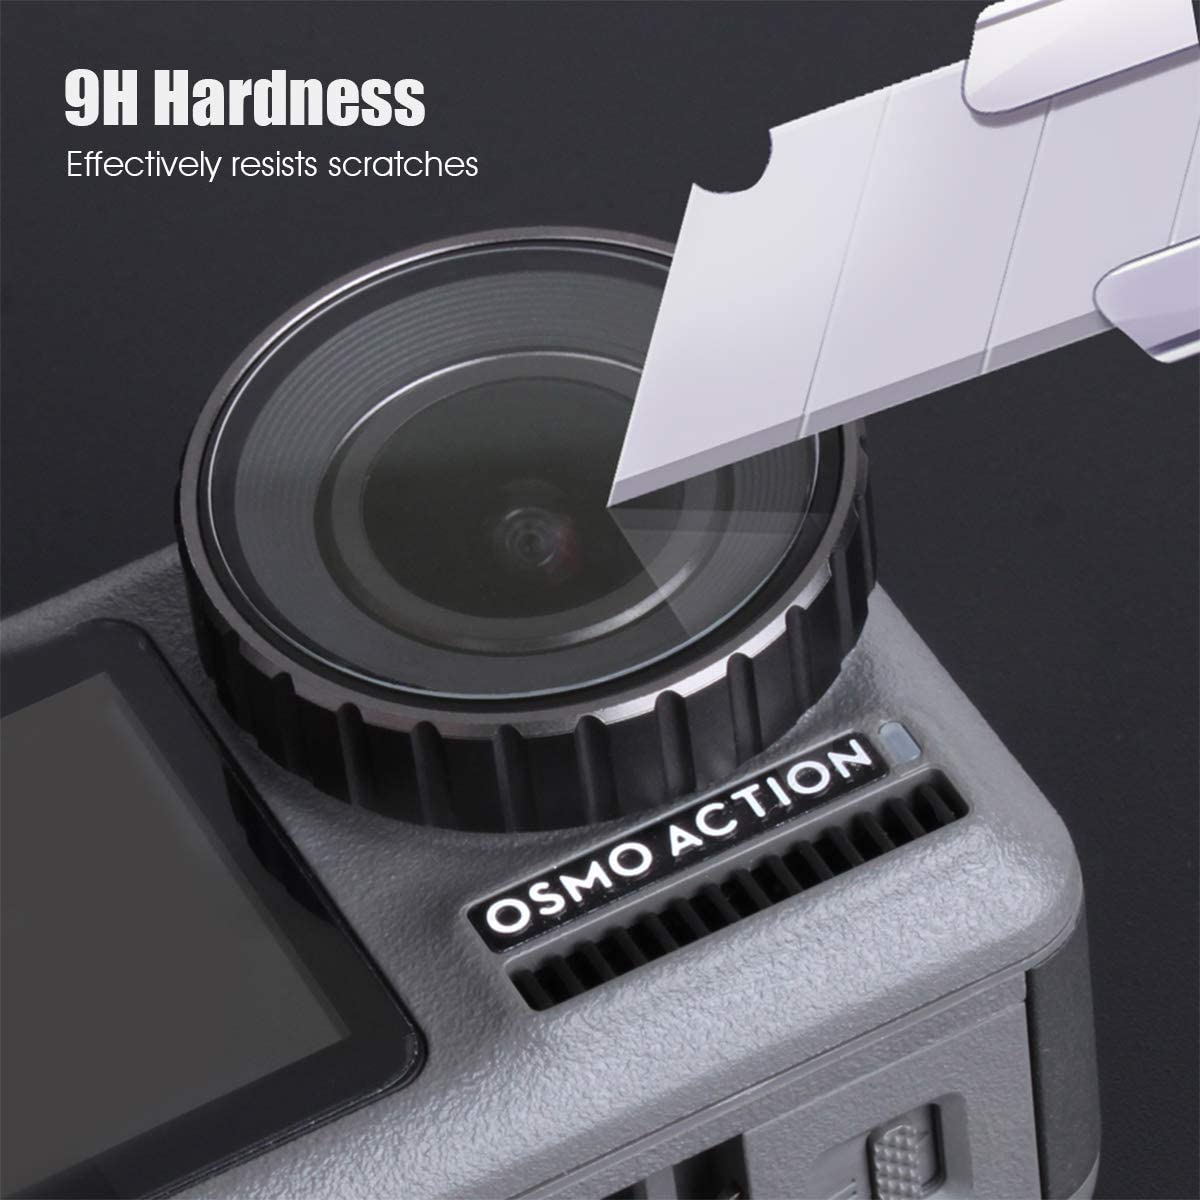 AuyKoo 6pcs Ultra Clear Anti-Scratch Screen Protector for DJI OSMO Action Camera 9H Hardness Tempered Glass Protector Film Cover for Osmo Action Camera Back /& Front LCD Screens and Lens